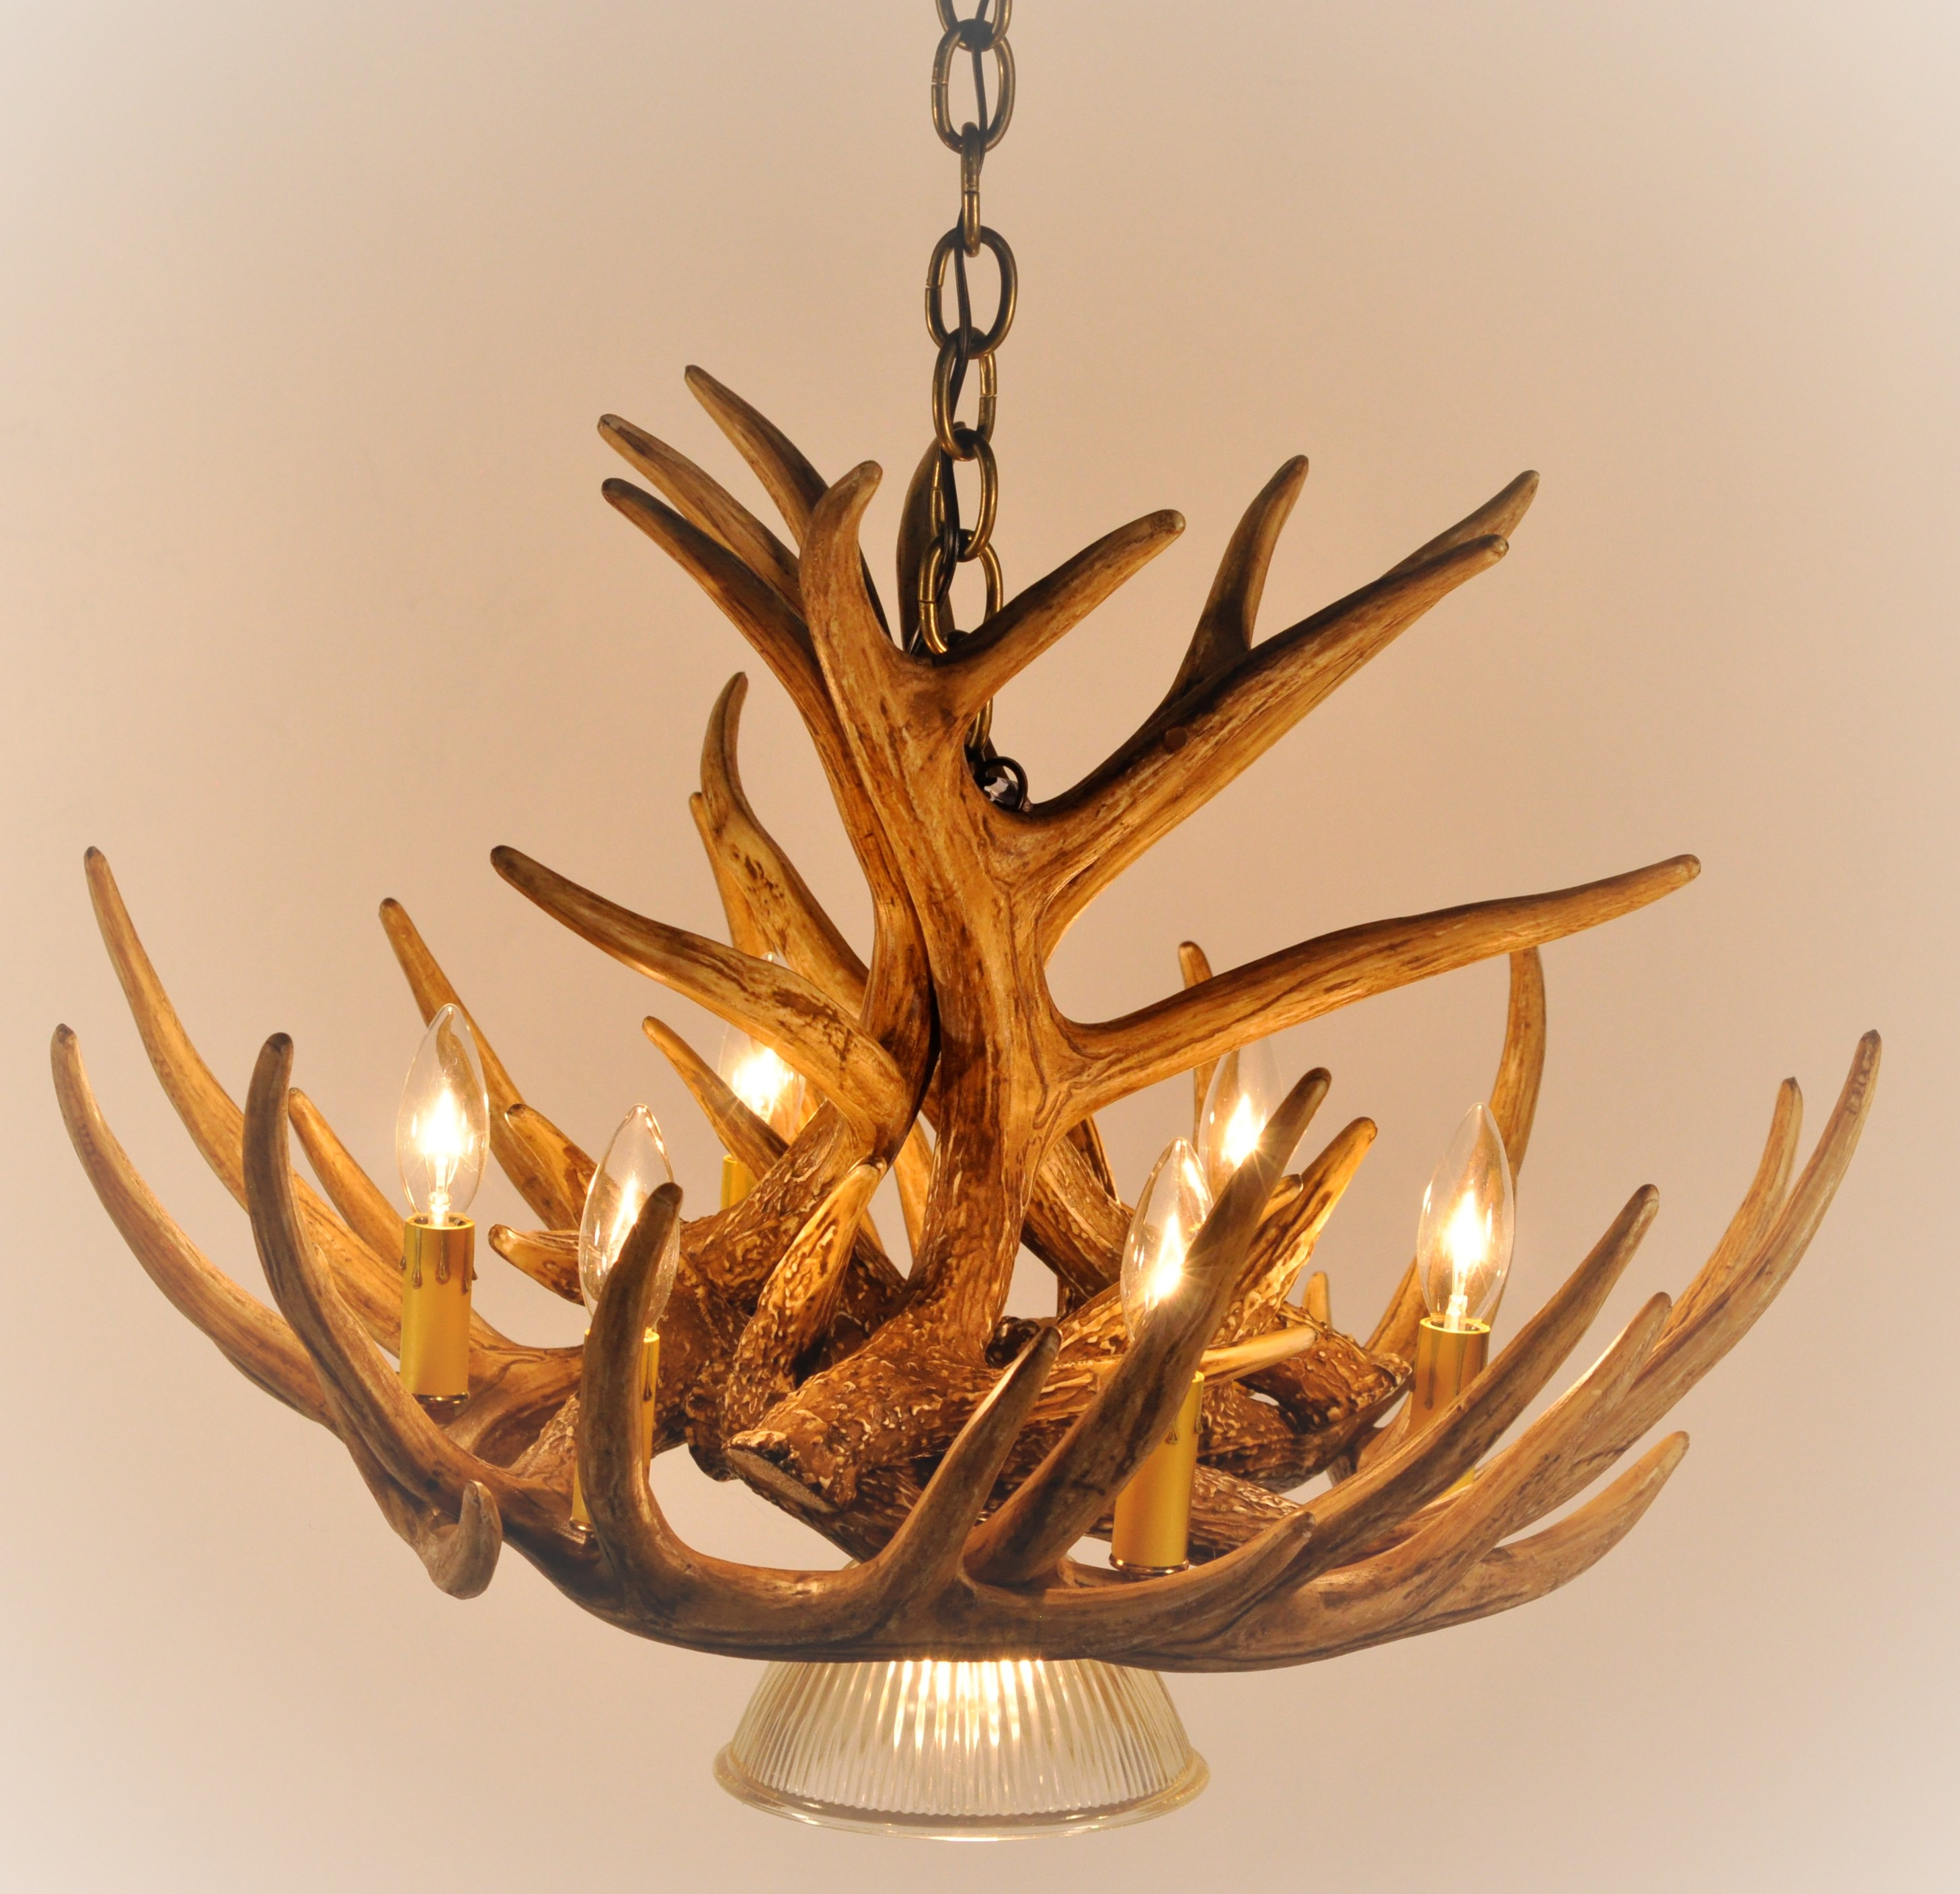 Deer Antler Ceiling Fans Best One For Your Home